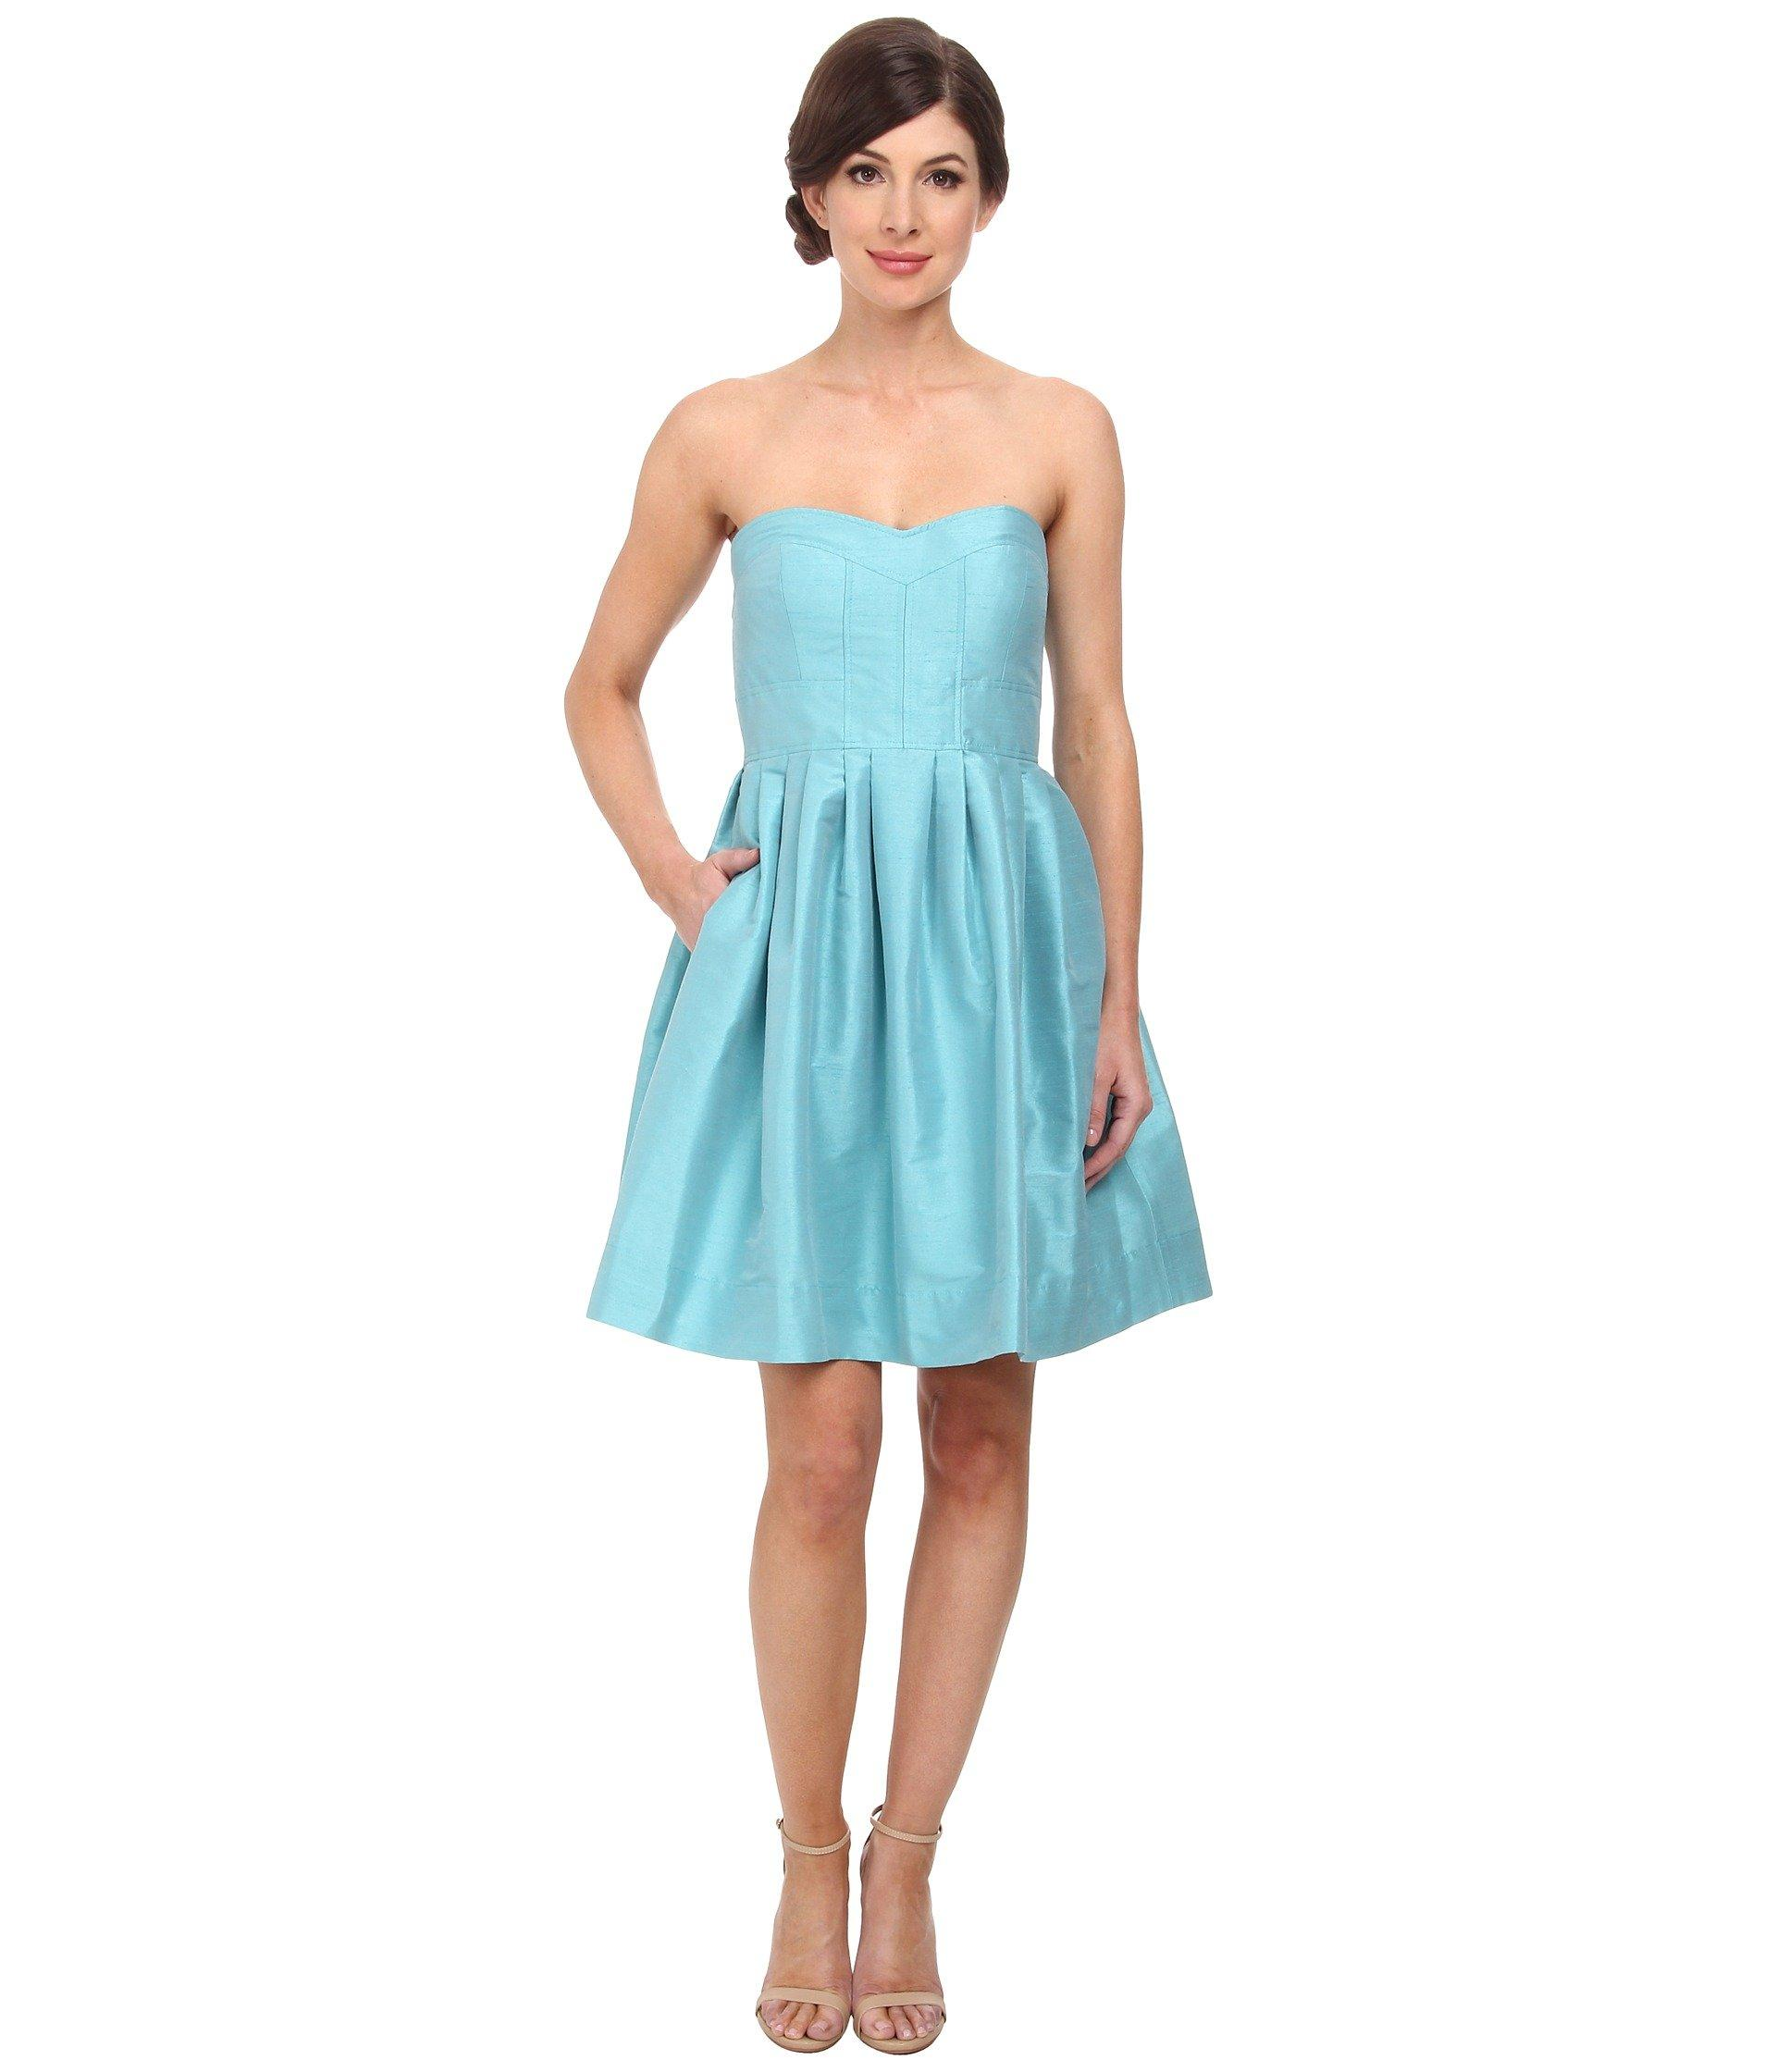 Shantung Turquoise Seamed Madison Bodice Strapless In f76Ybgyv